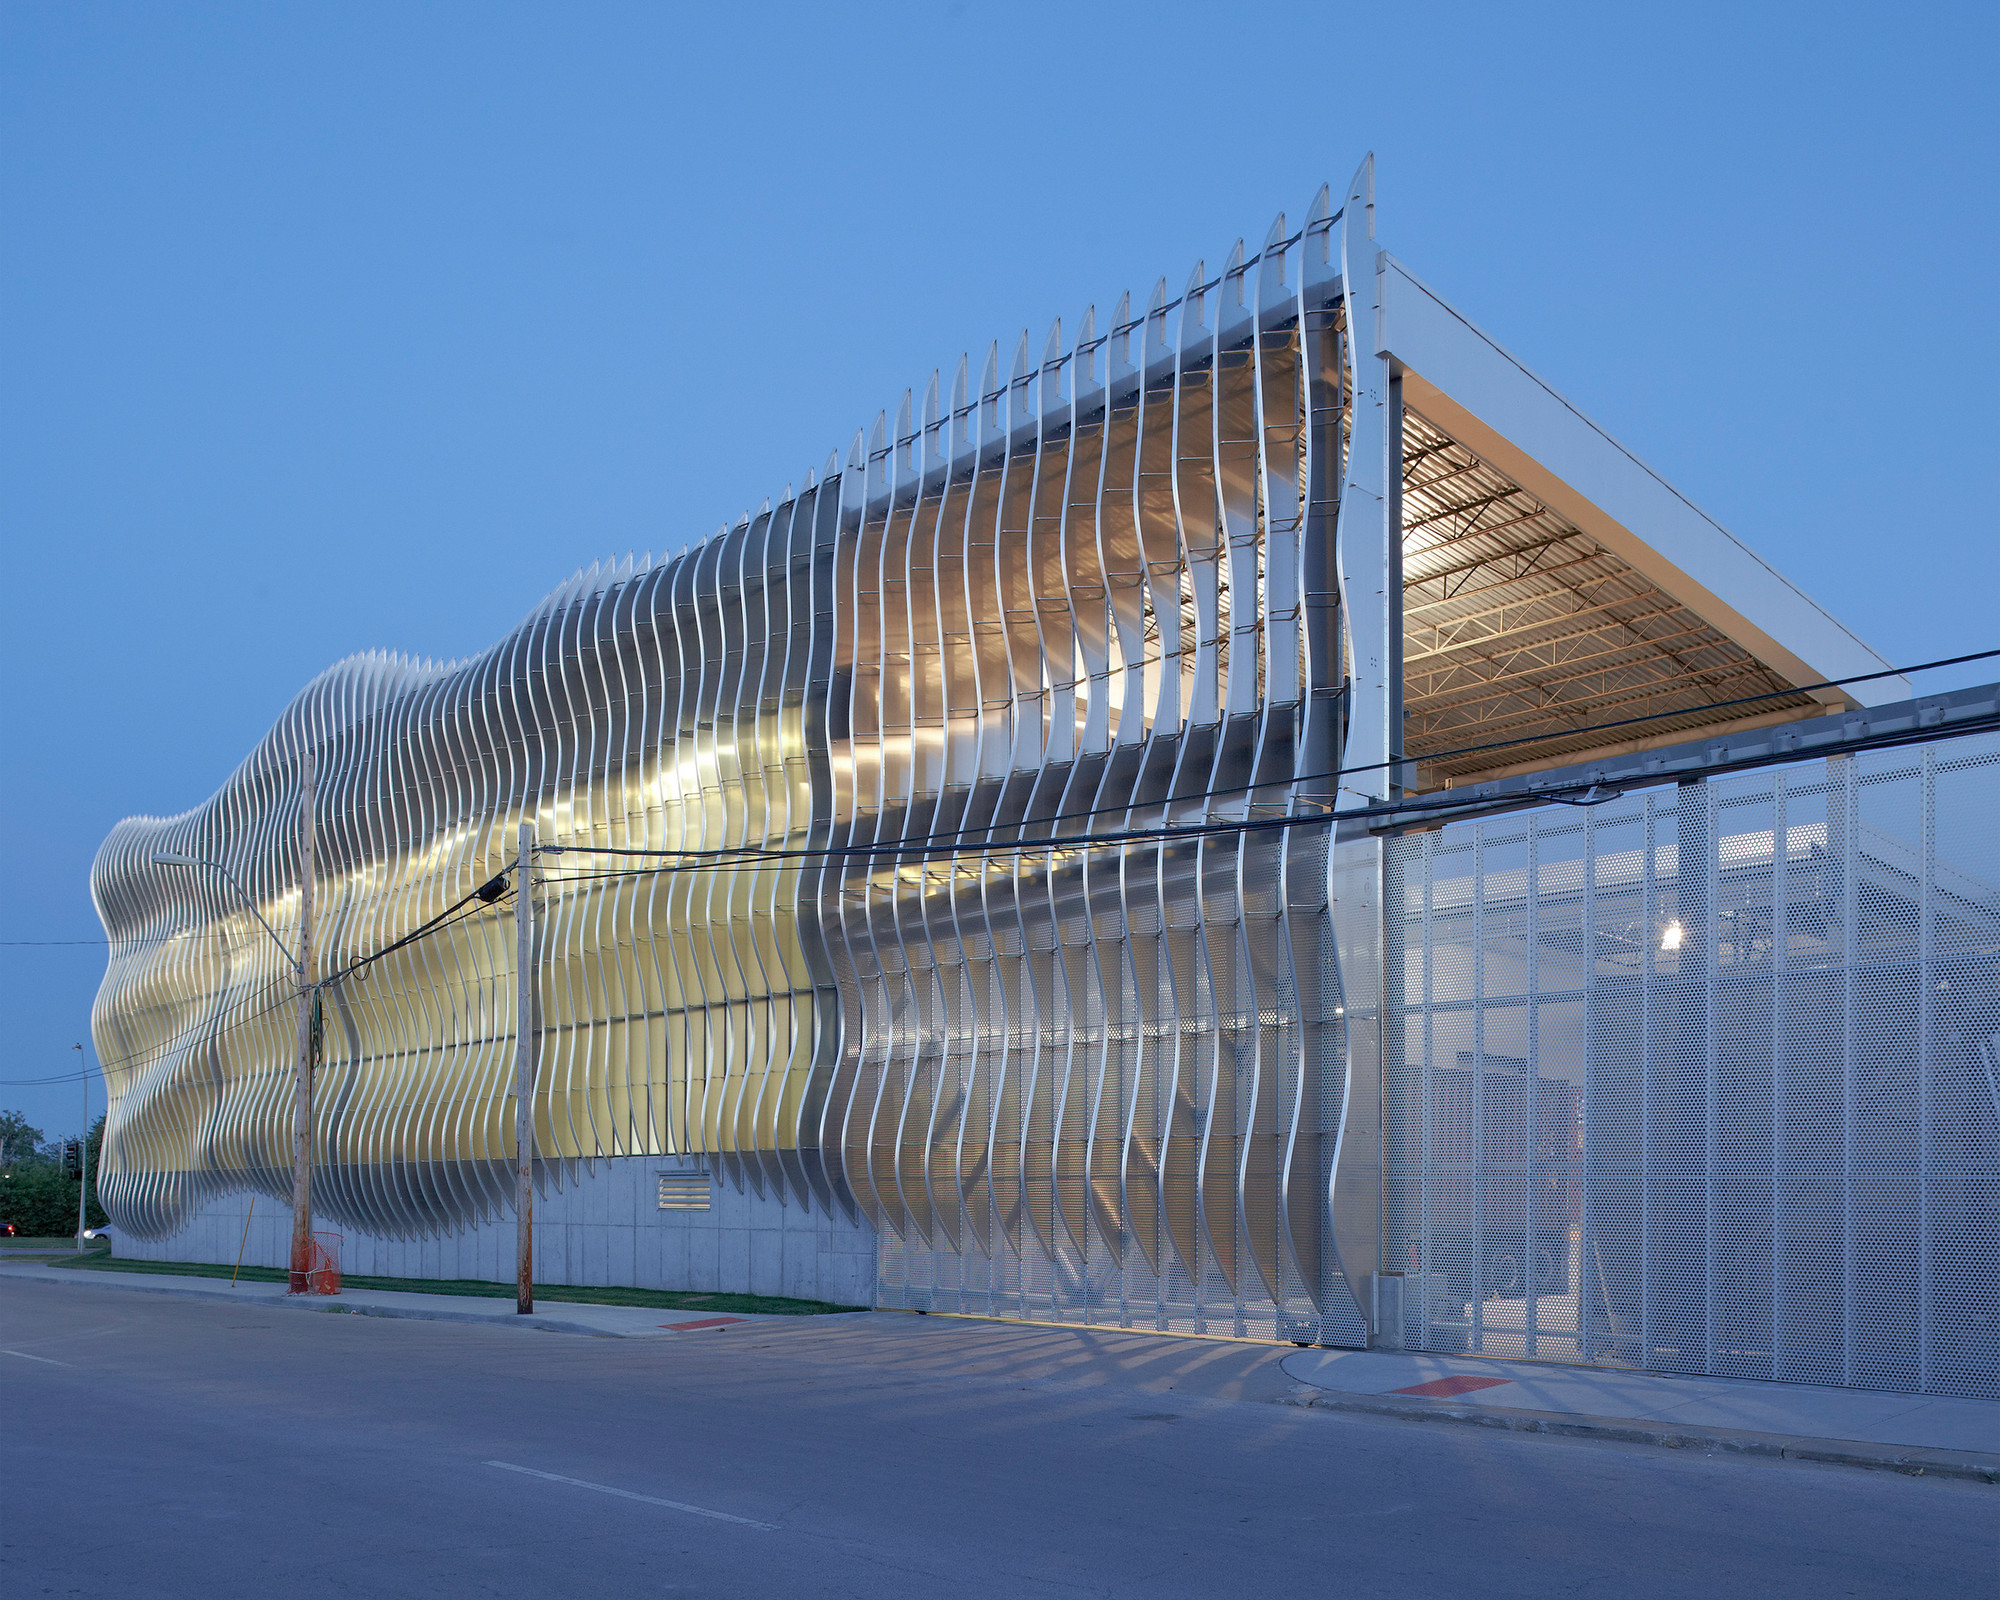 Original design by Crawford Architects on the Zahner Headquarters in North America / Mike Sinclair. Image Courtesy of Zahner